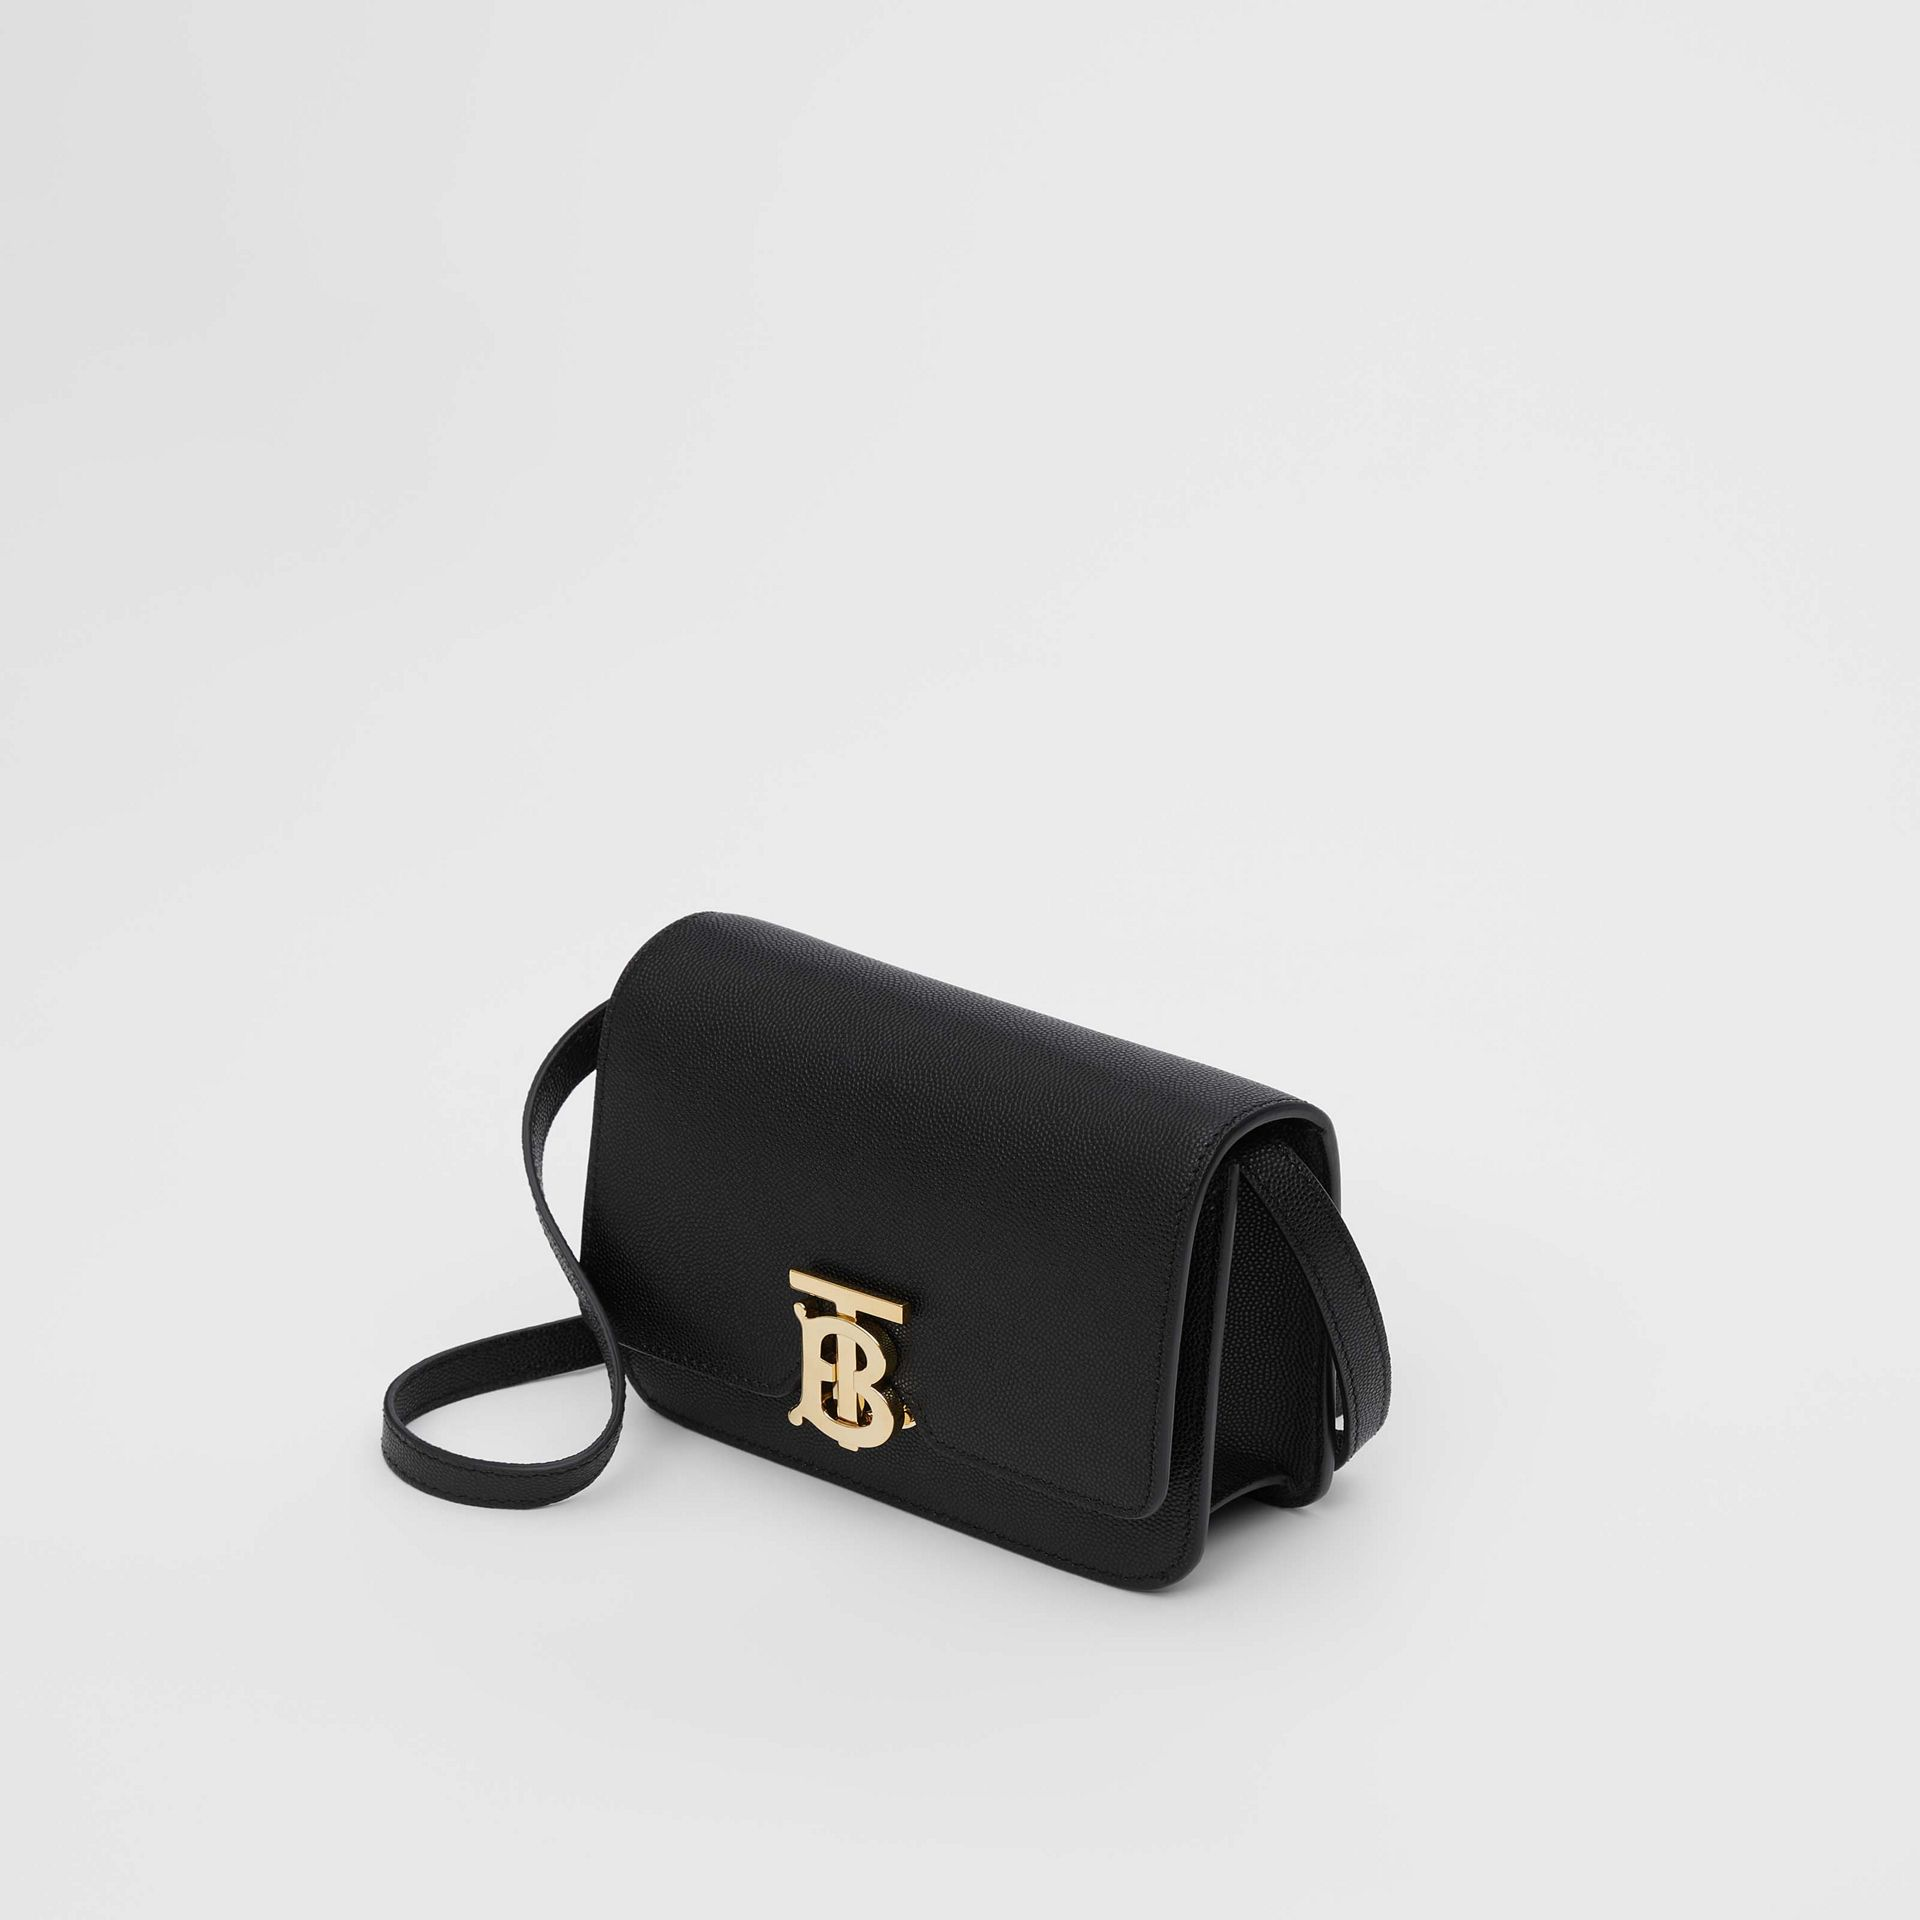 Mini Grainy Leather TB Bag in Black - Women | Burberry Singapore - gallery image 3